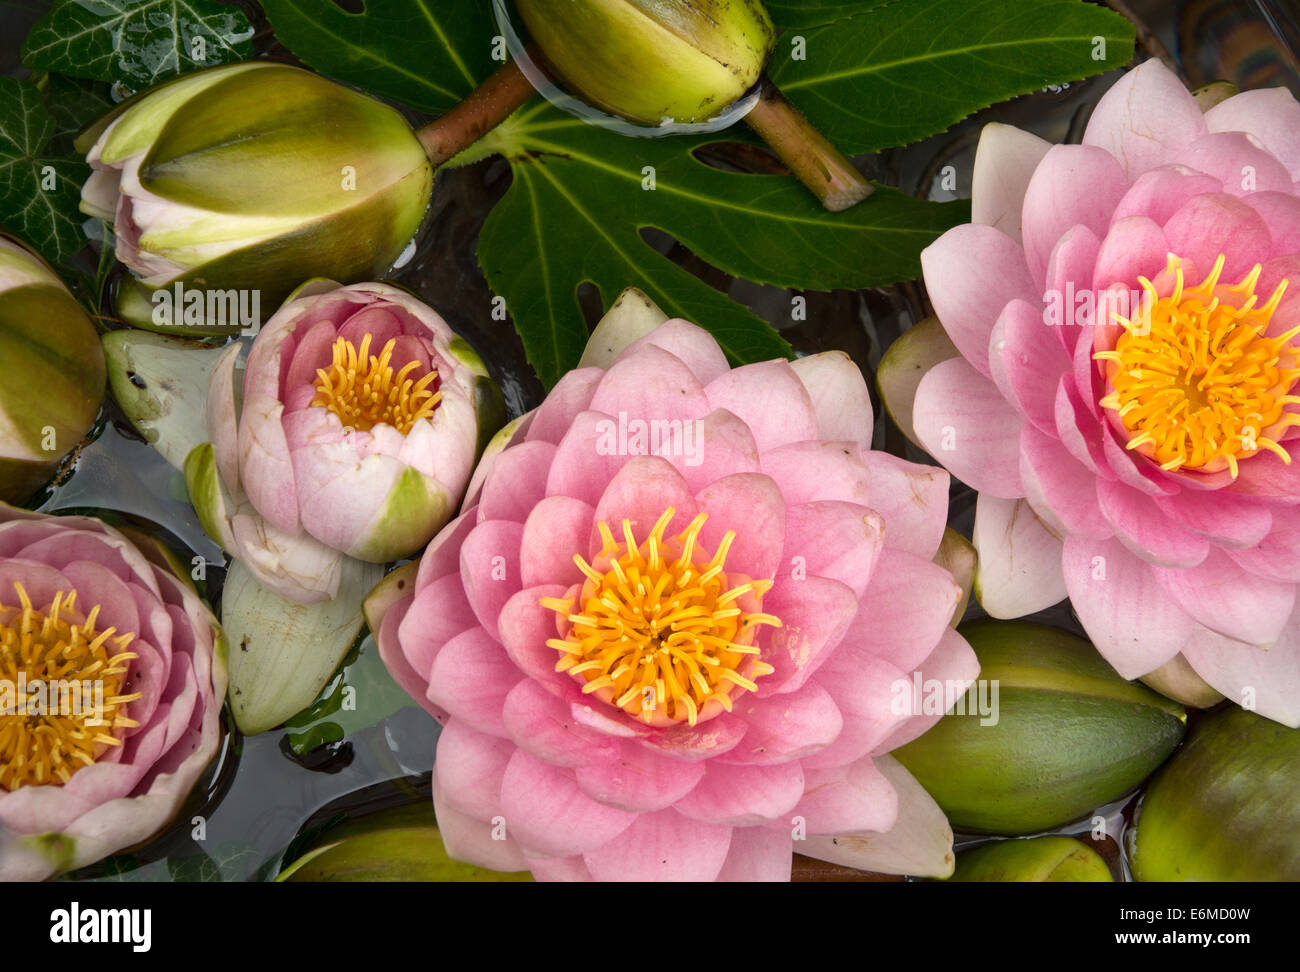 Pink water lilies in Vienna, Austria - Stock Image